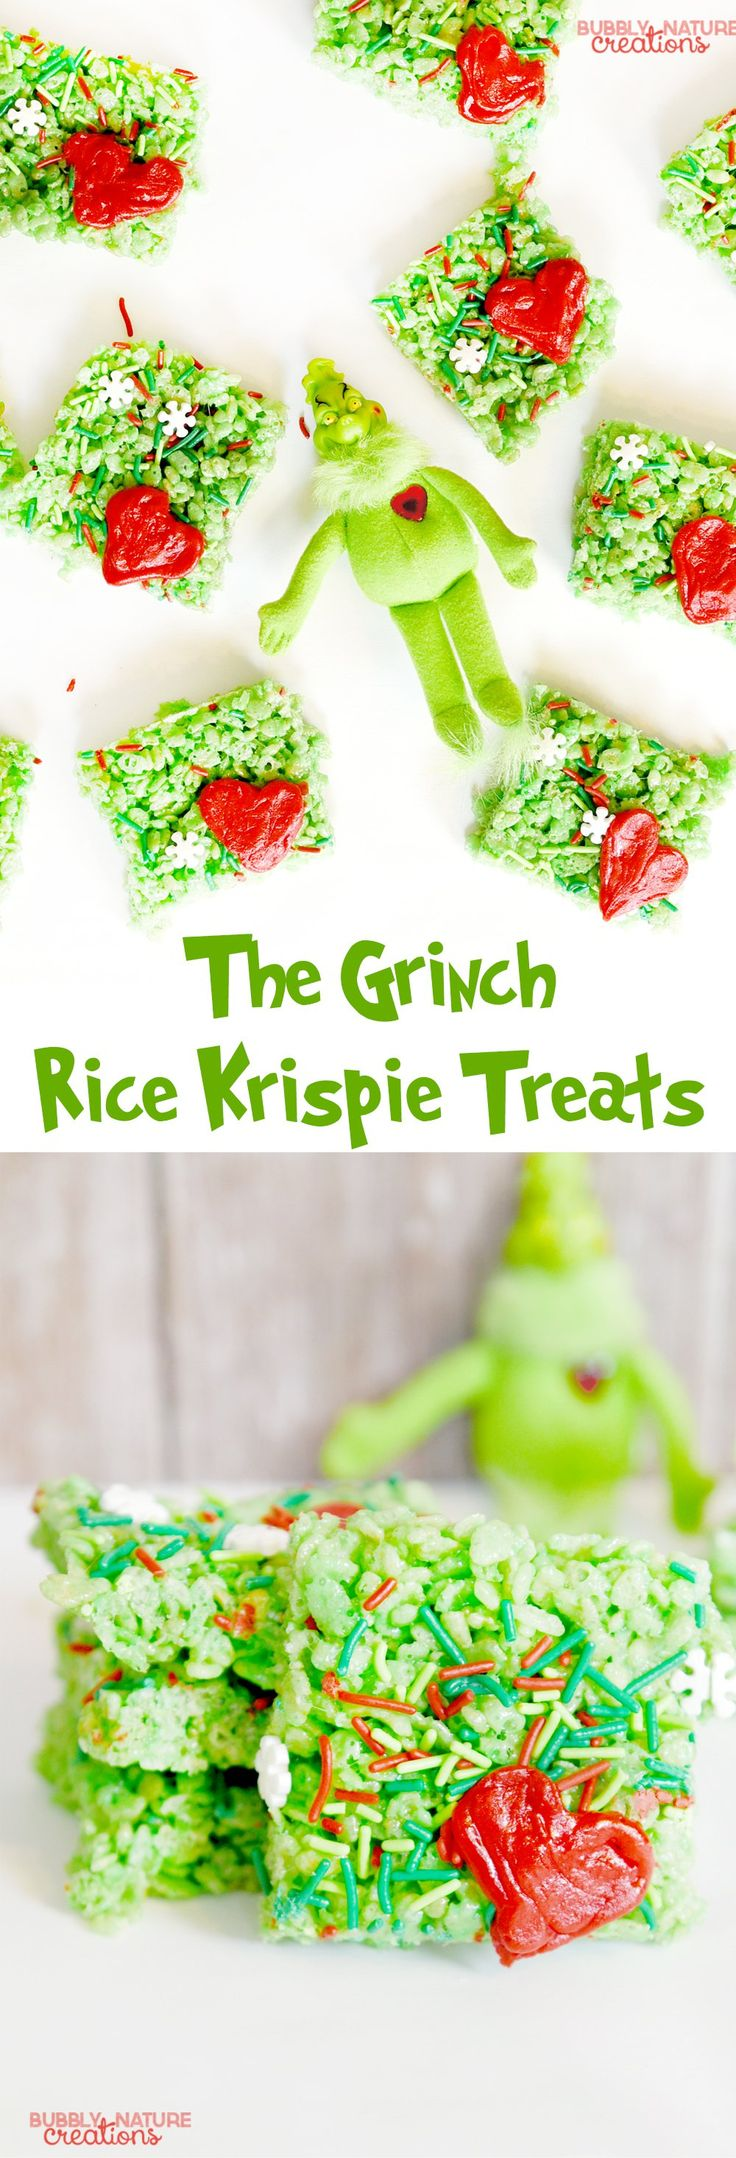 The Grinch inspired Rice Krispie Treats Cereal Bars! So fun for Christmas. Make these and watch The Grinch!!!